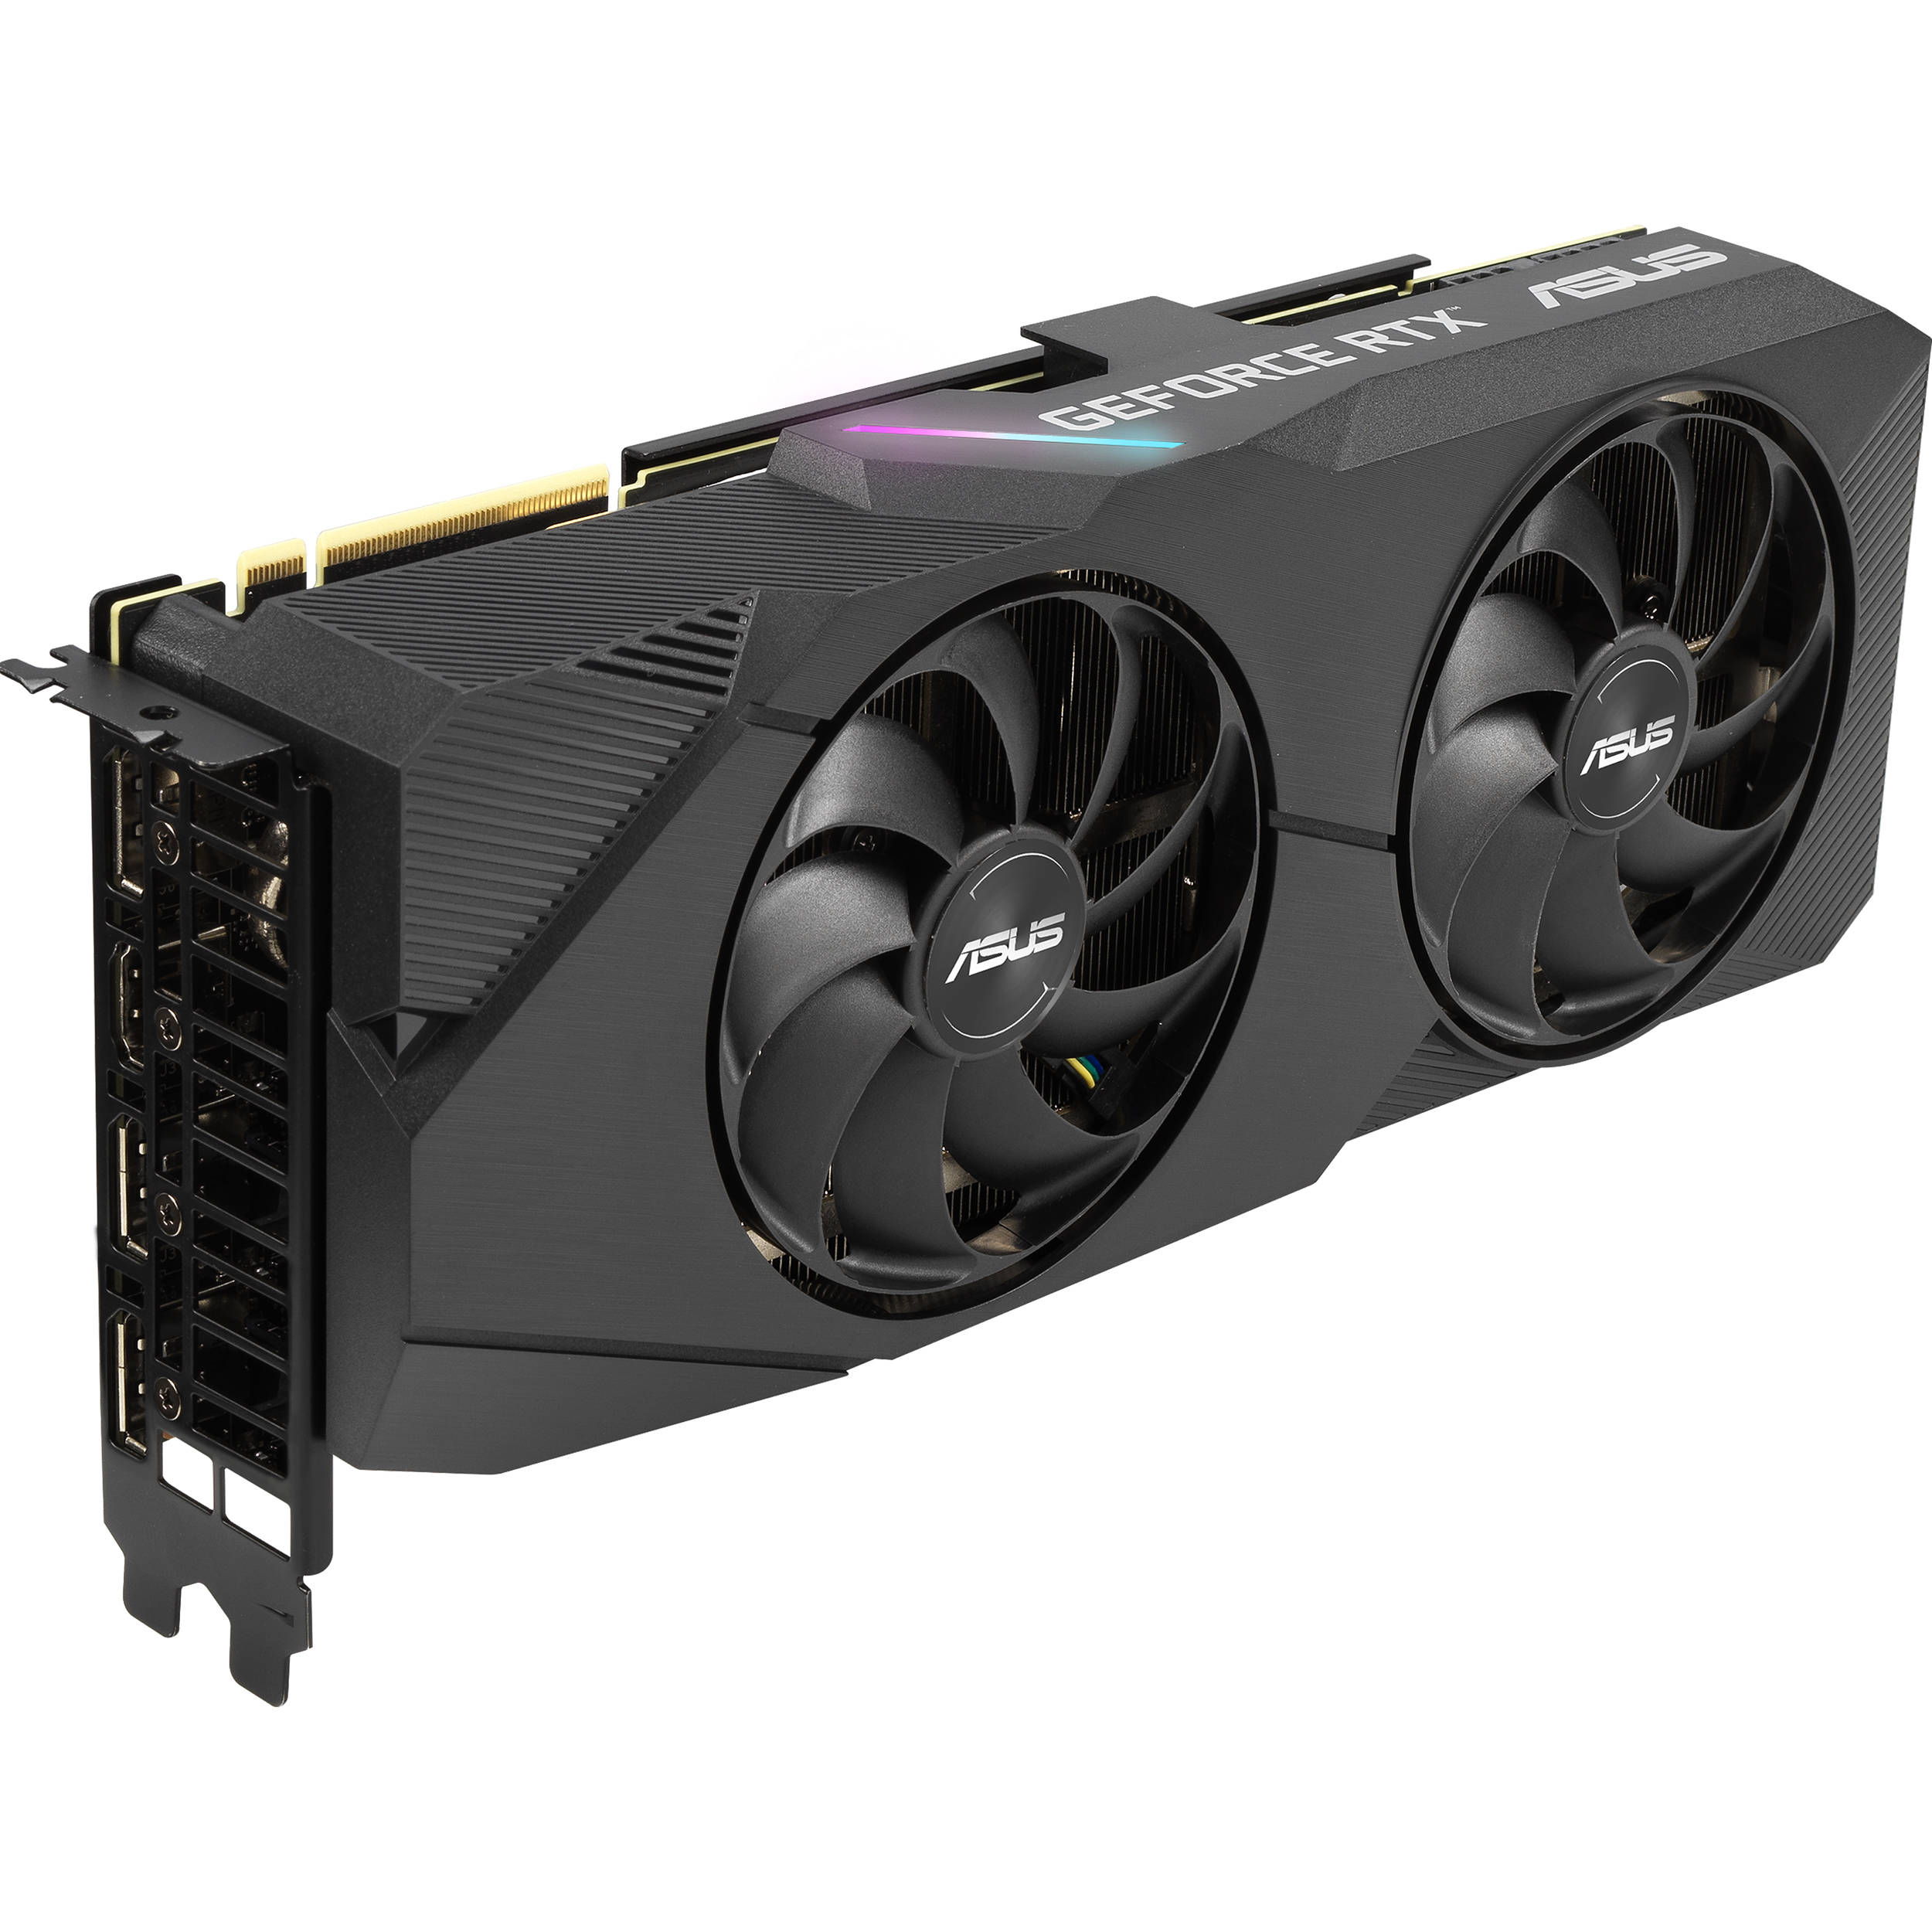 ASUS Dual GeForce RTX 2080 SUPER EVO OC Edition Graphics Card